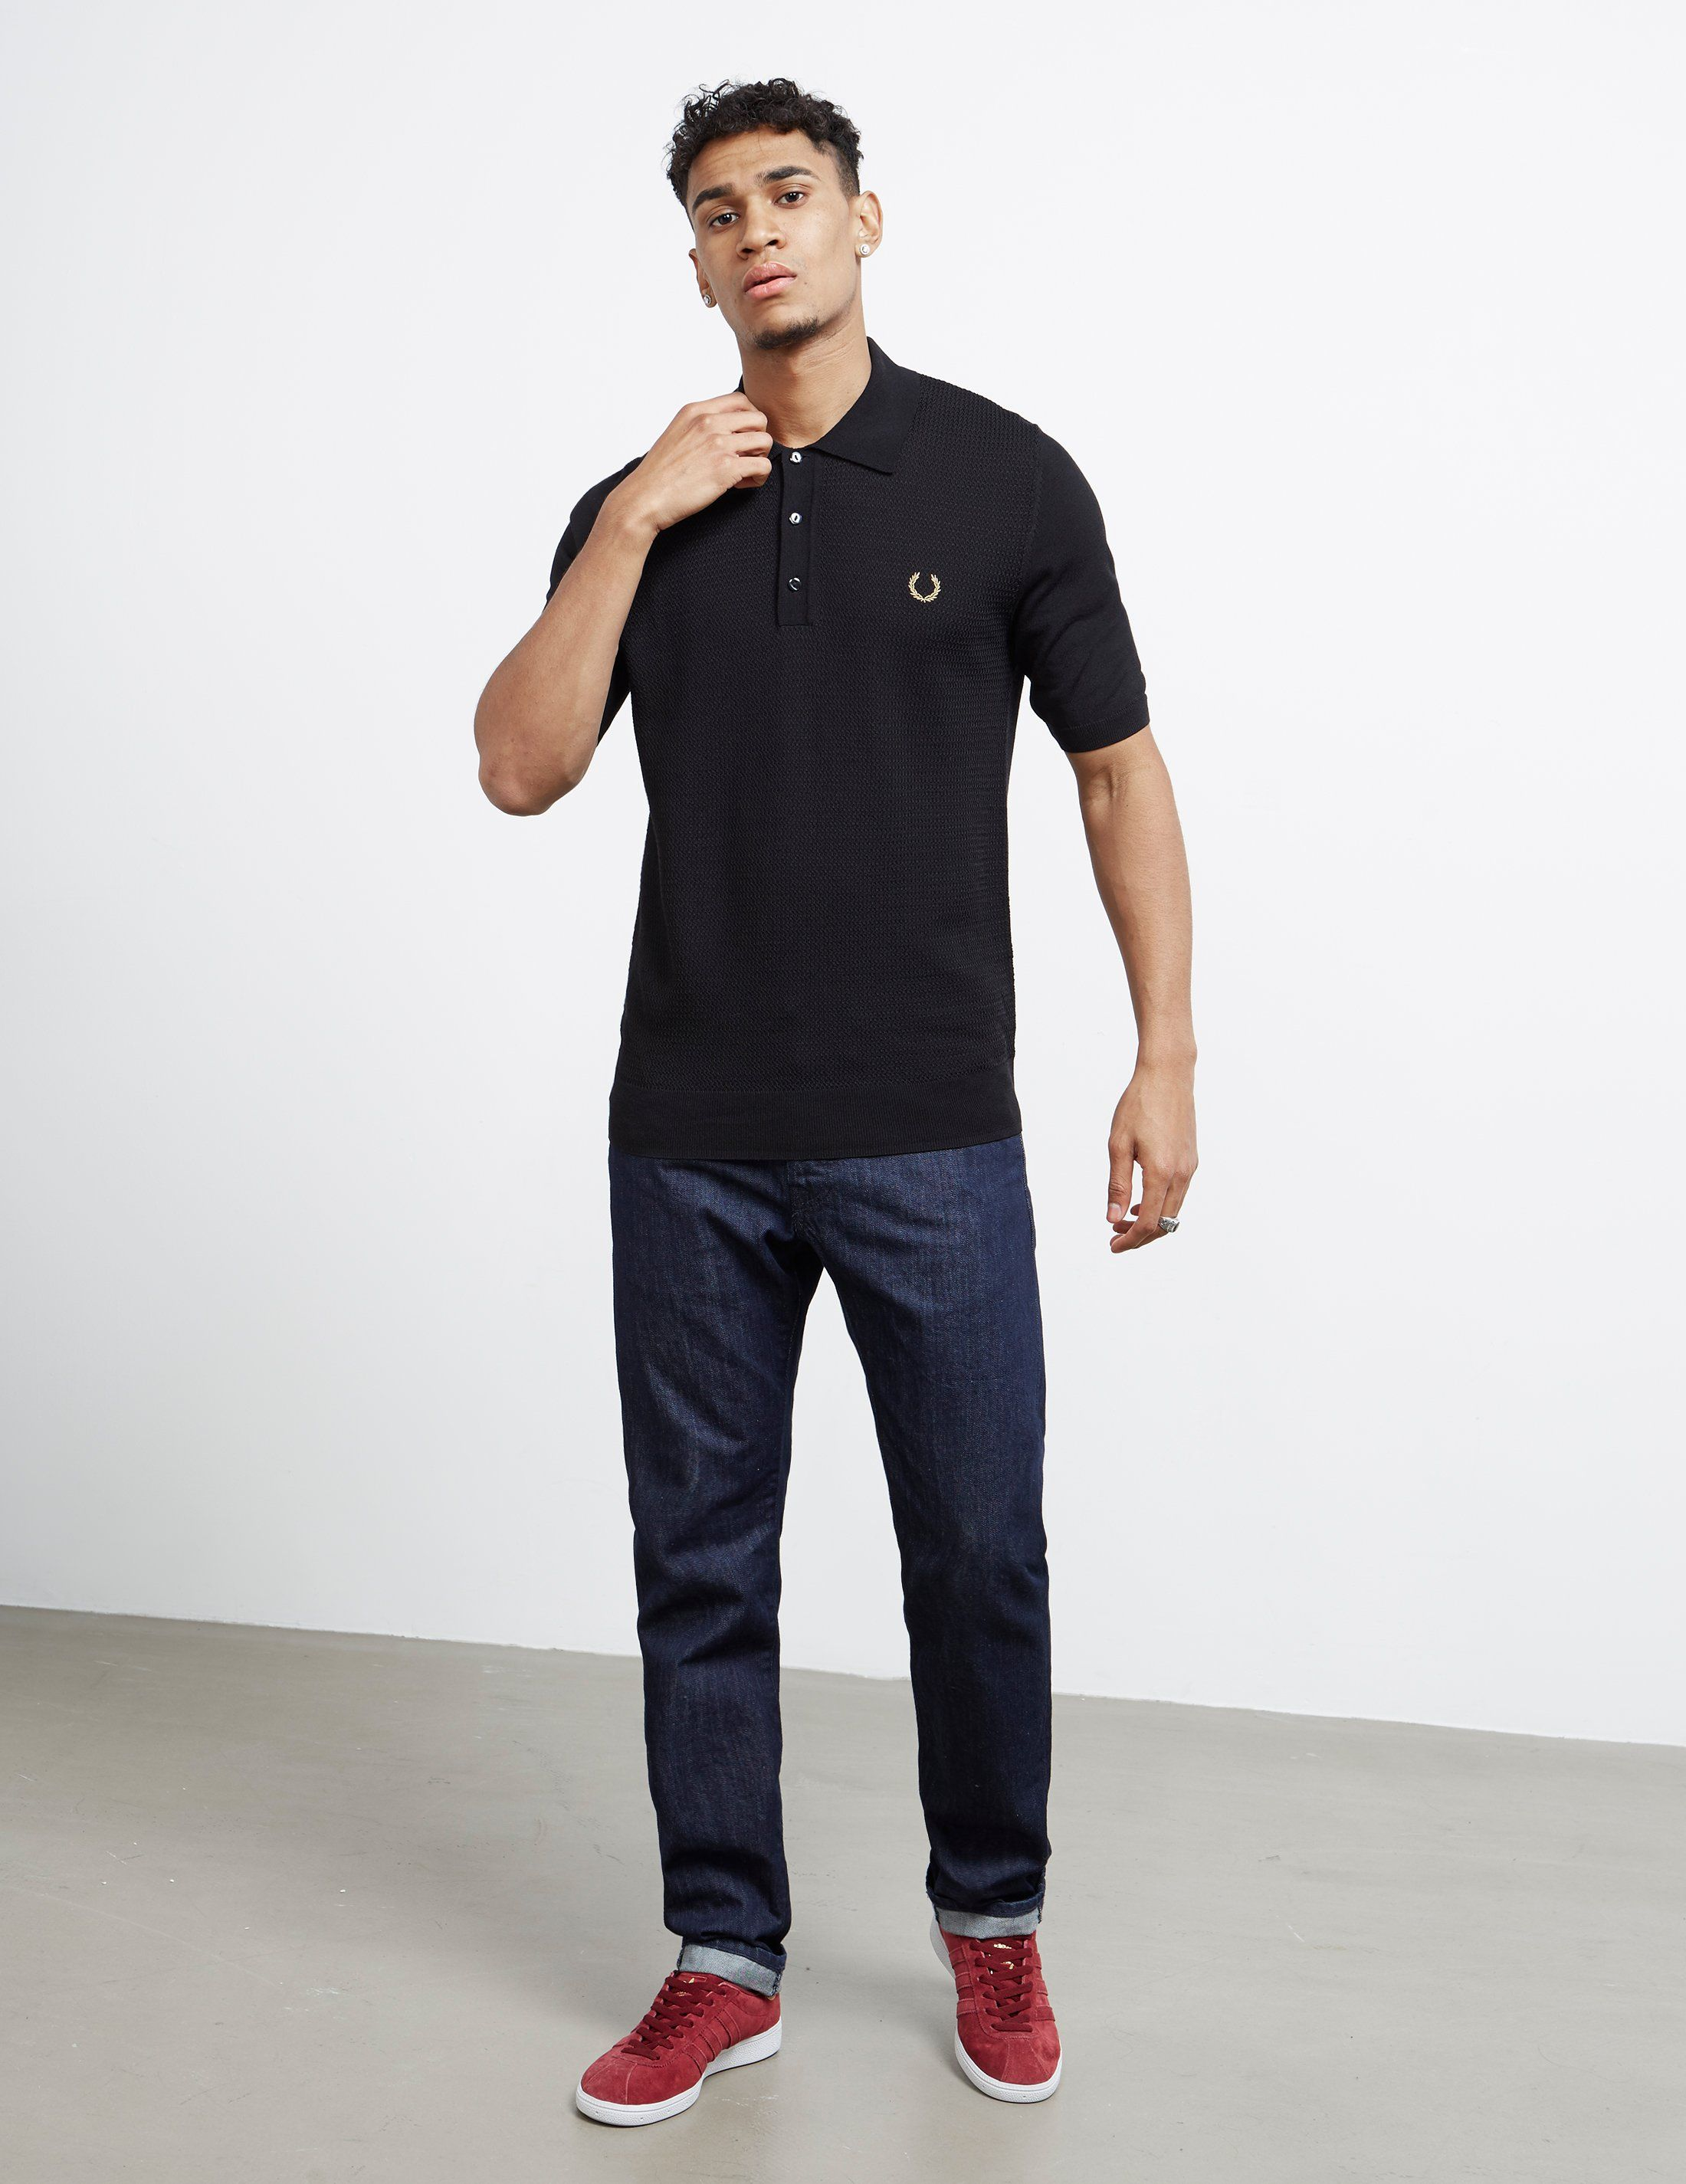 Fred Perry x Miles Kane Panel Knitted Polo Shirt